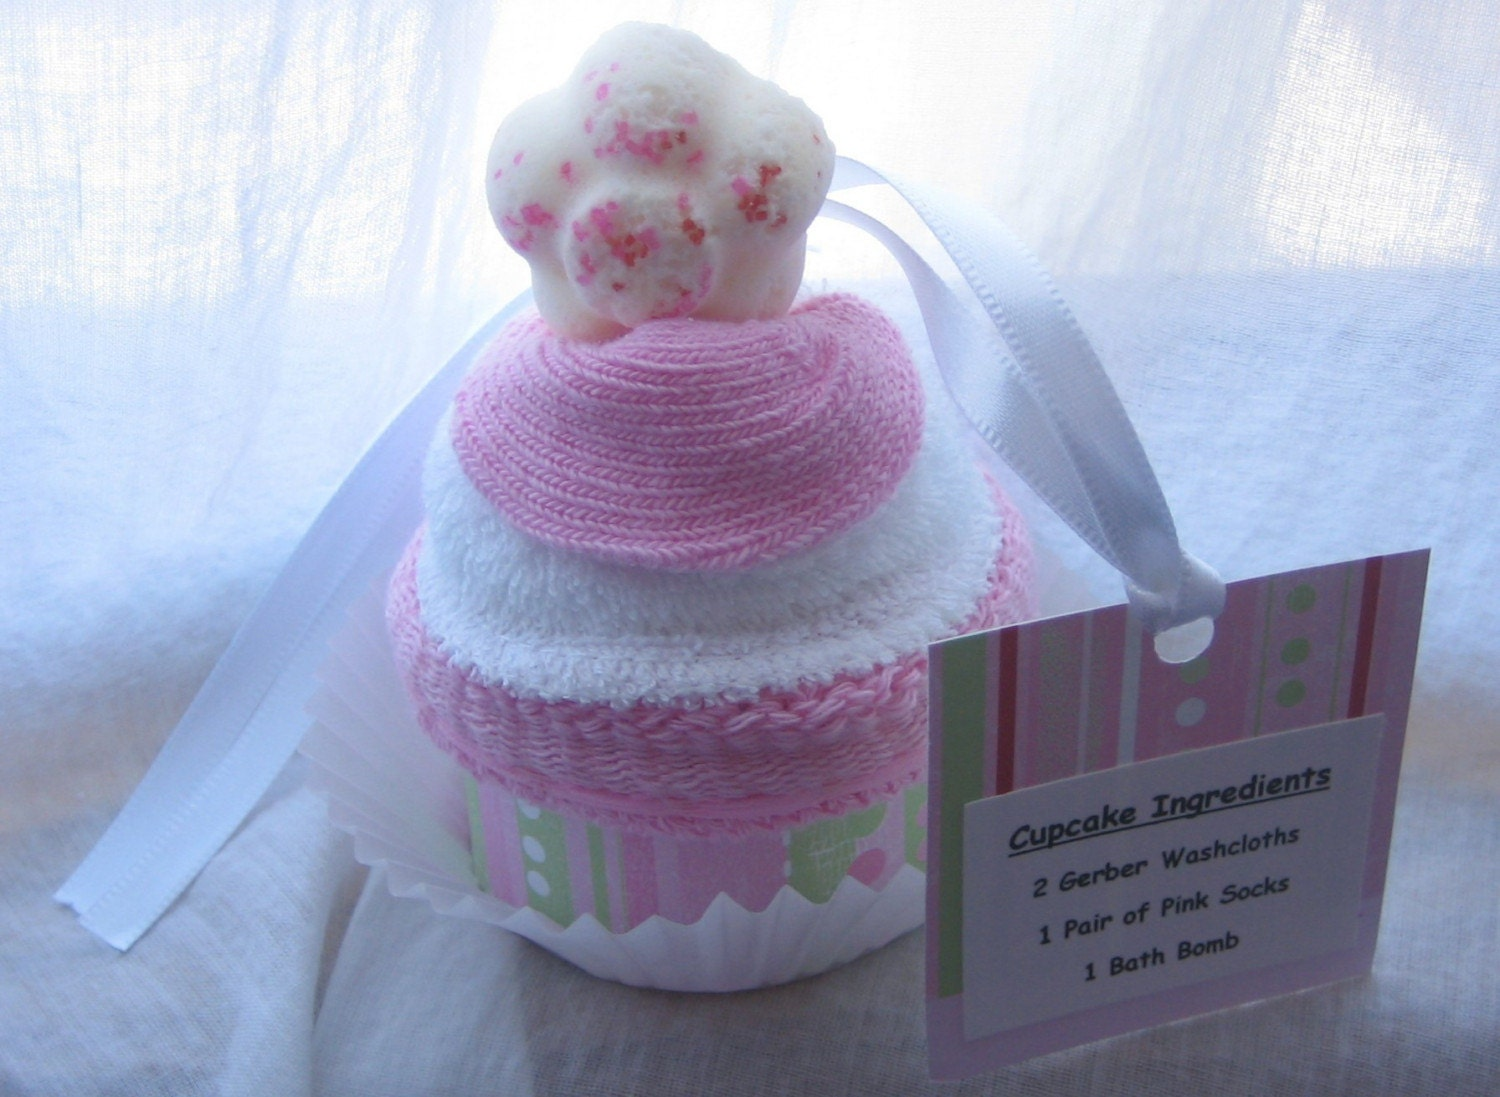 Cupcake washcloth and baby socks with bath bomb flower or heart shape on top GREAT FOR BABY SHOWERS or BIRTHDAYS